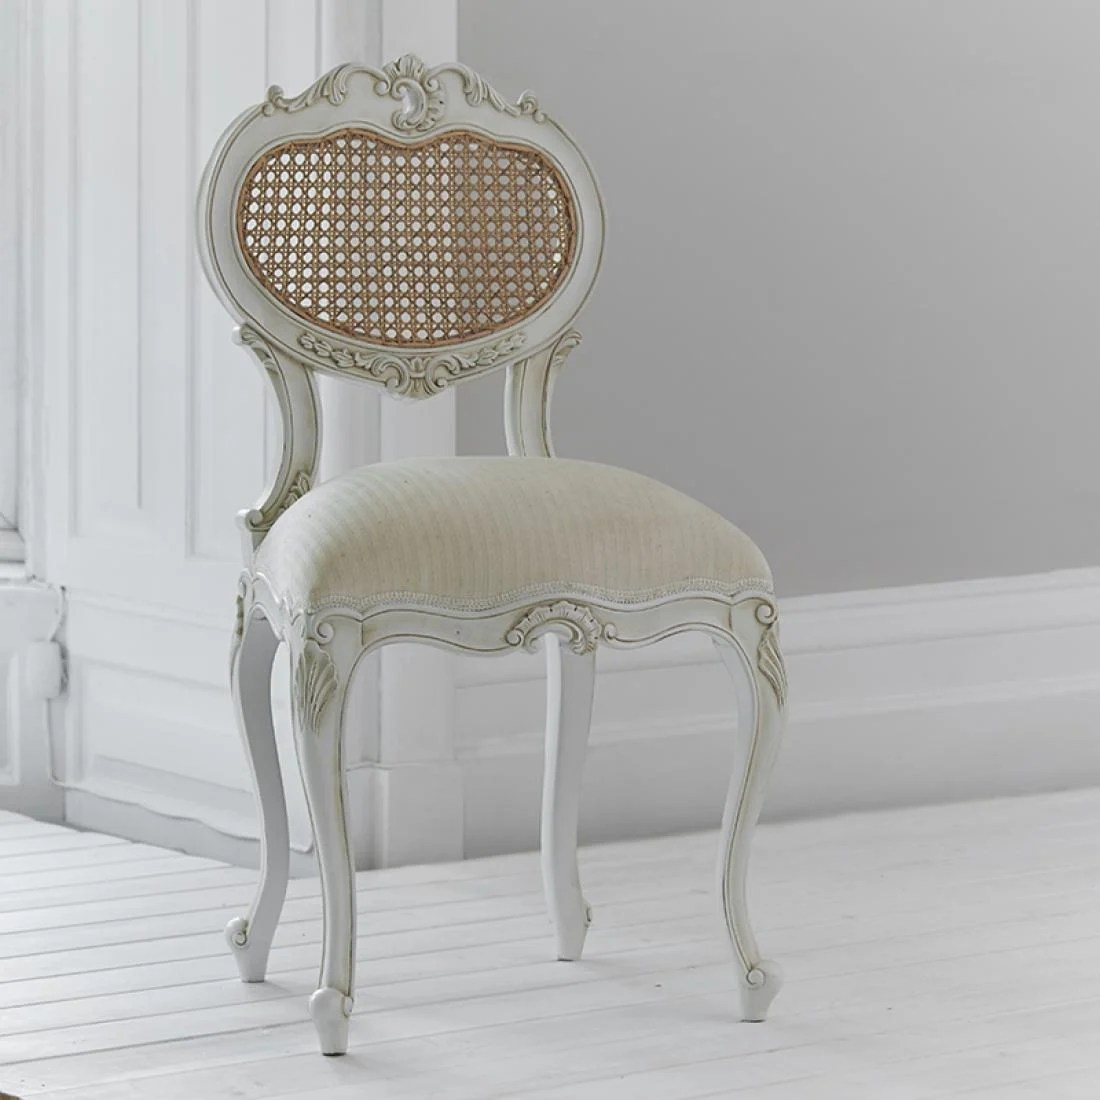 Upholstered Children's Chairs Tilly Rattan Dressing Table Chair